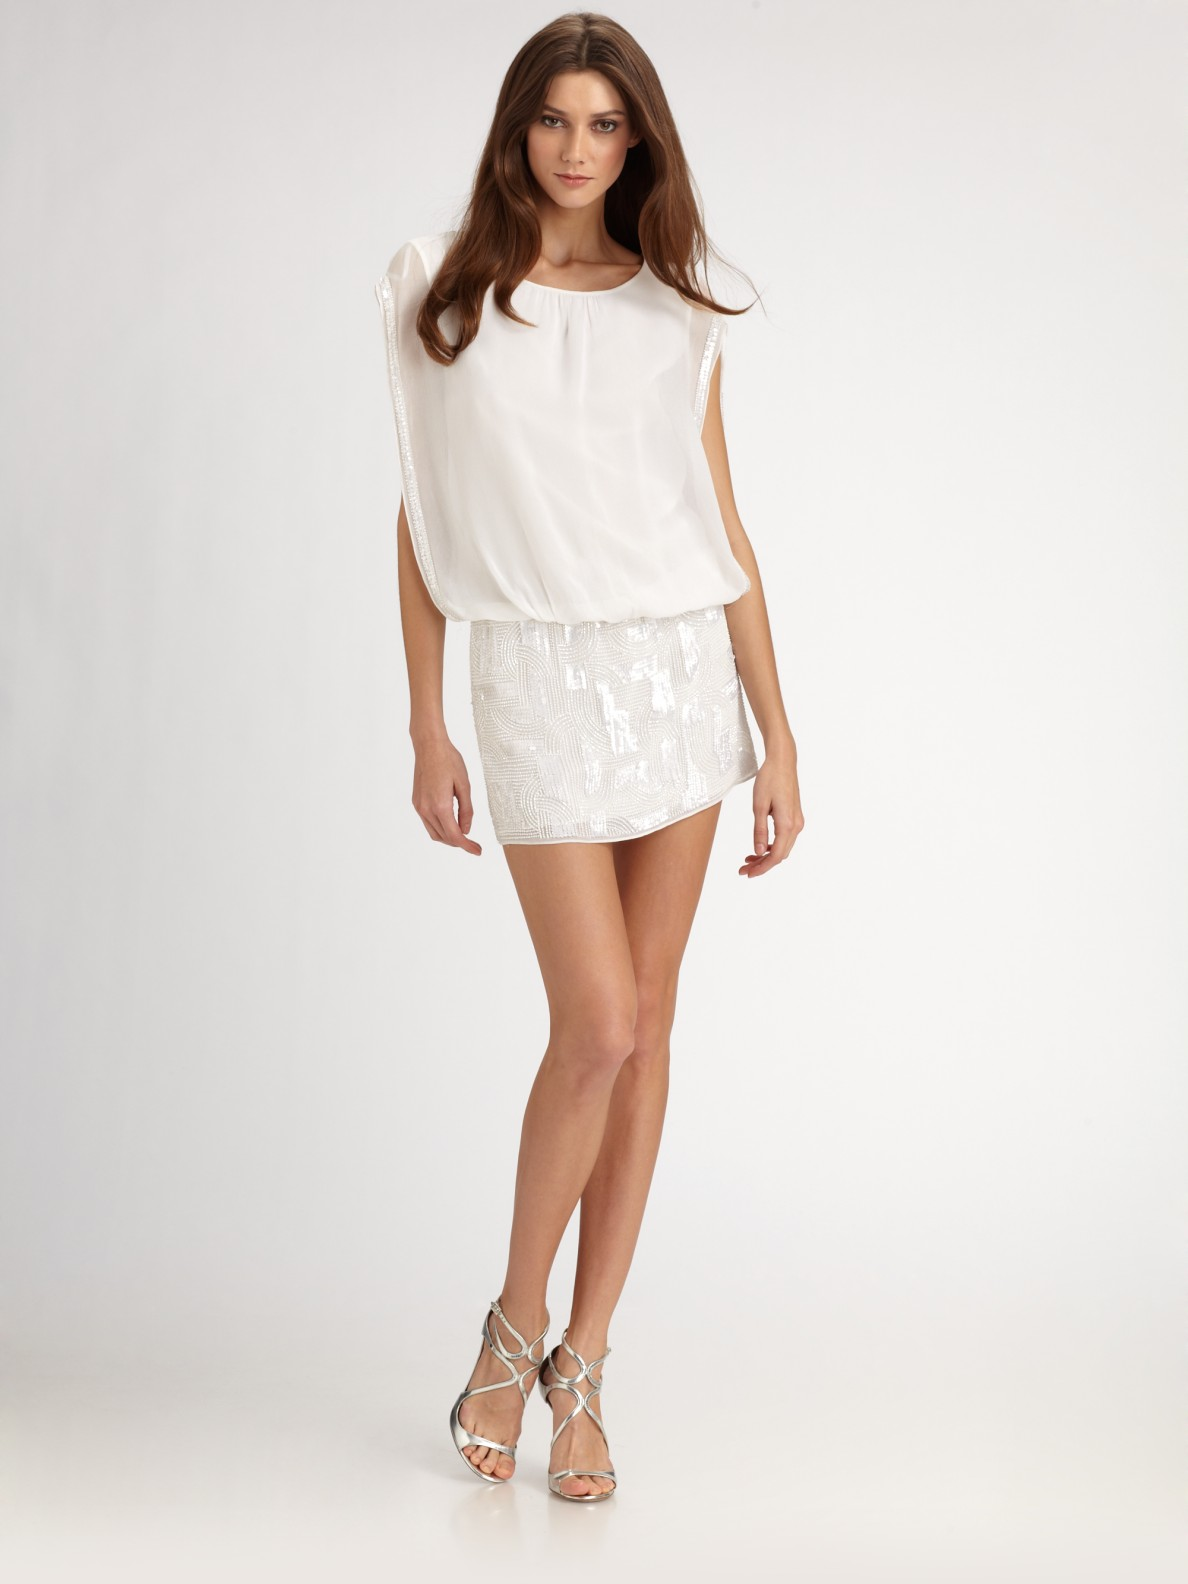 43f2502fab3 Aidan Mattox Beaded Chiffon Blouson Mini Dress in White - Lyst